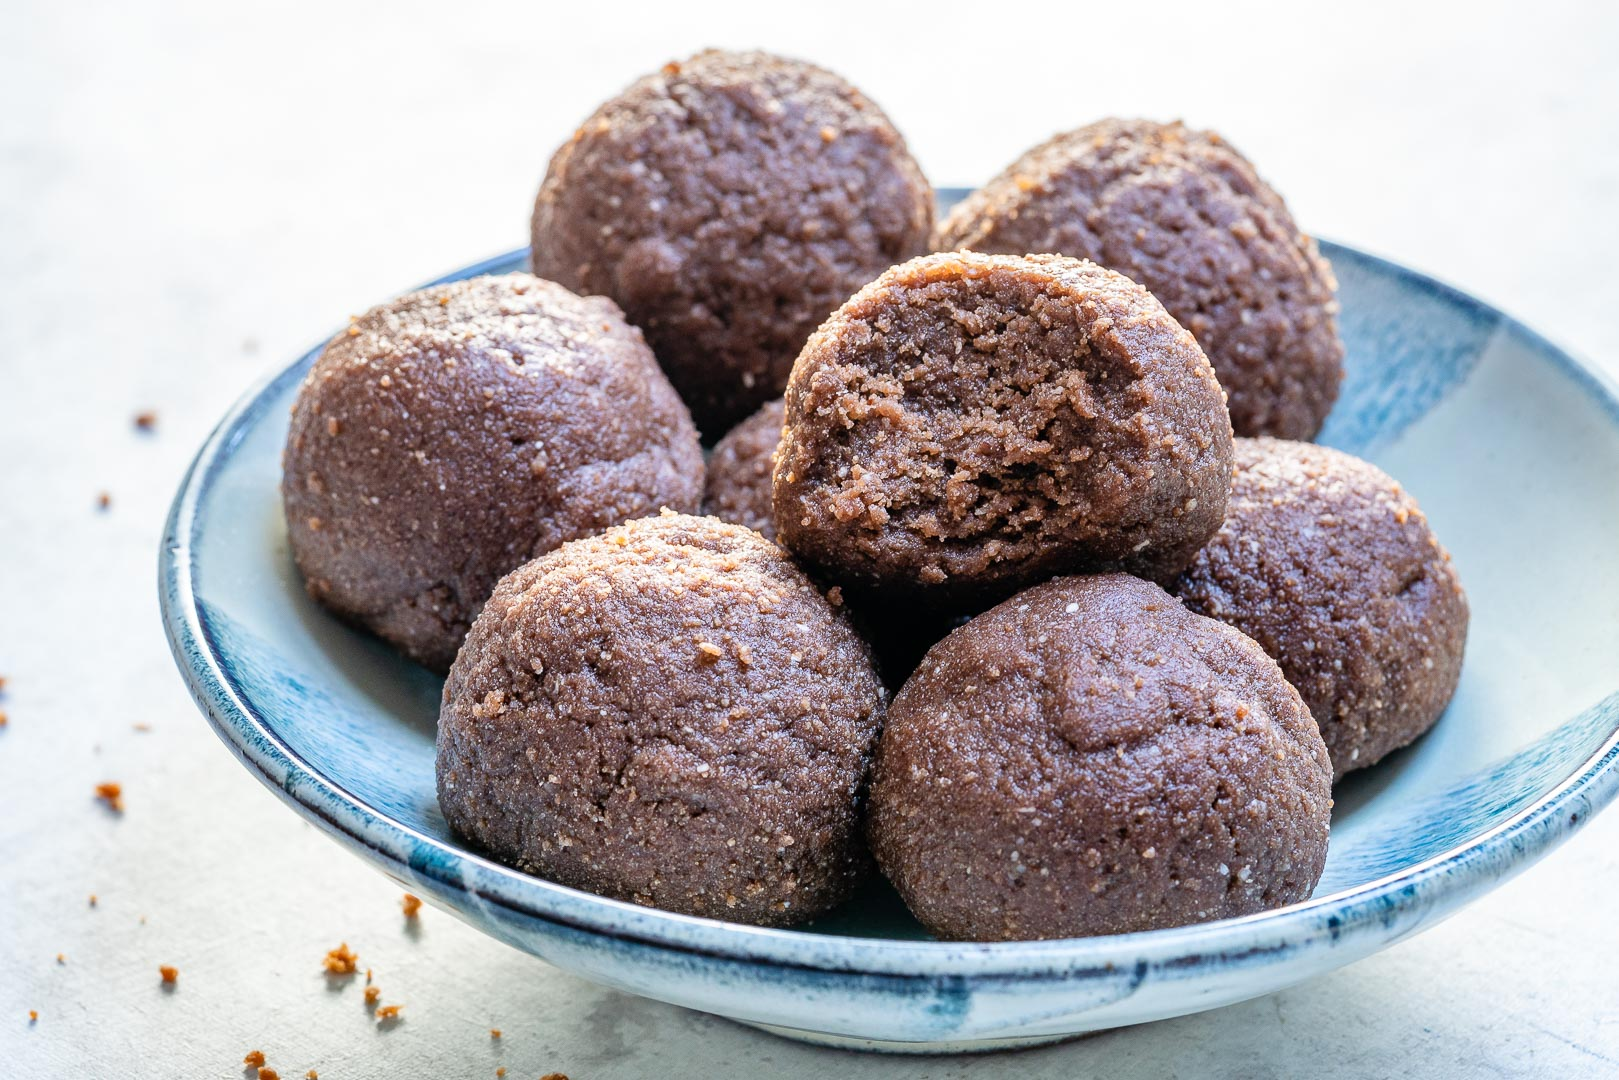 Chocolate PB Protein Balls Clean Snacks Idea